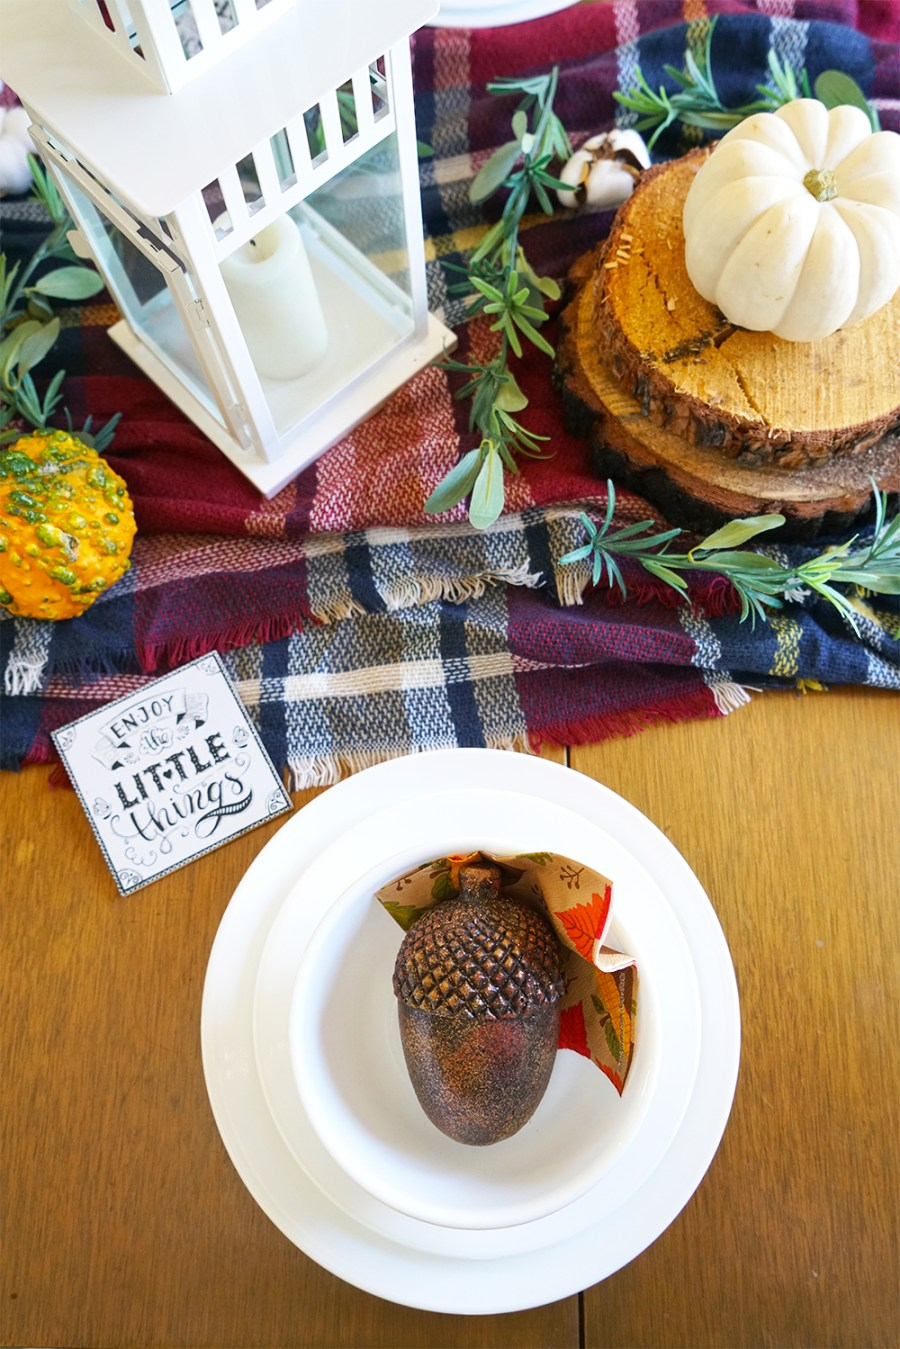 DIY Fall Tablescape with white Corelle Dinnerware, plaid blanket, wood accents, and fall pumpkins.